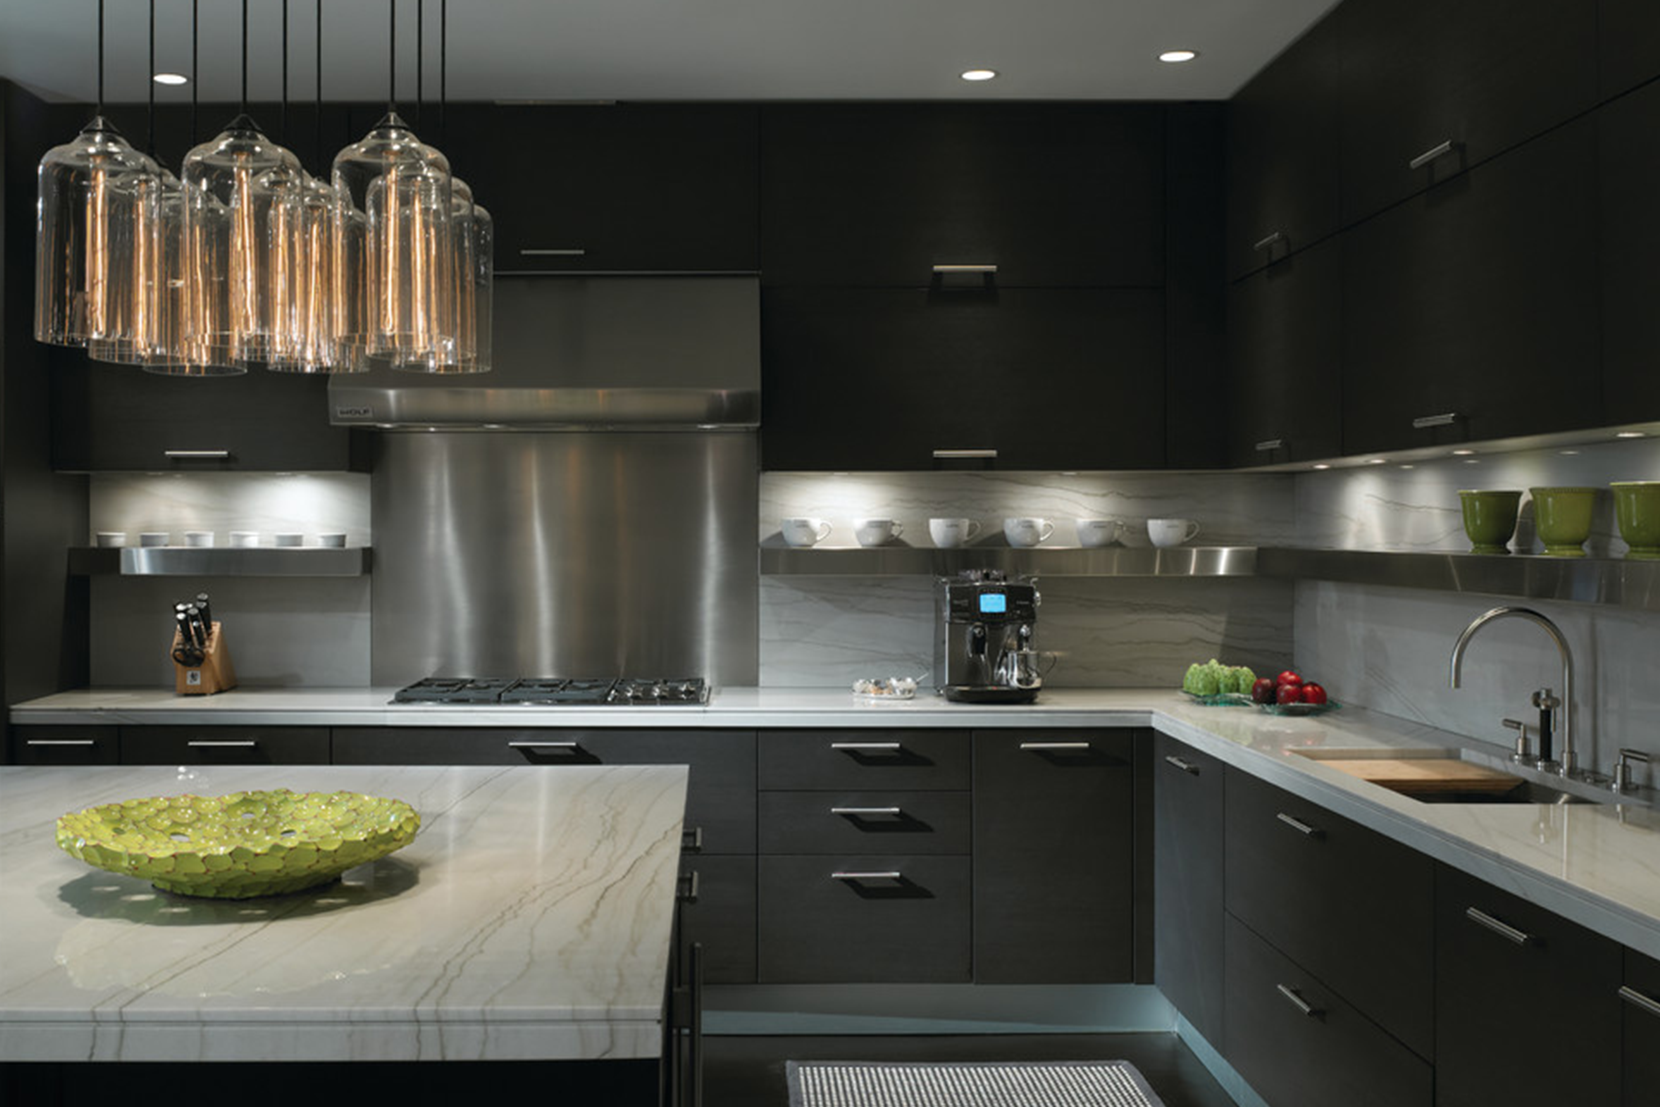 Lighting-Project-Pages_0007s_0002_Kitchen-Modern-Lighting-Black-Kitchen.png